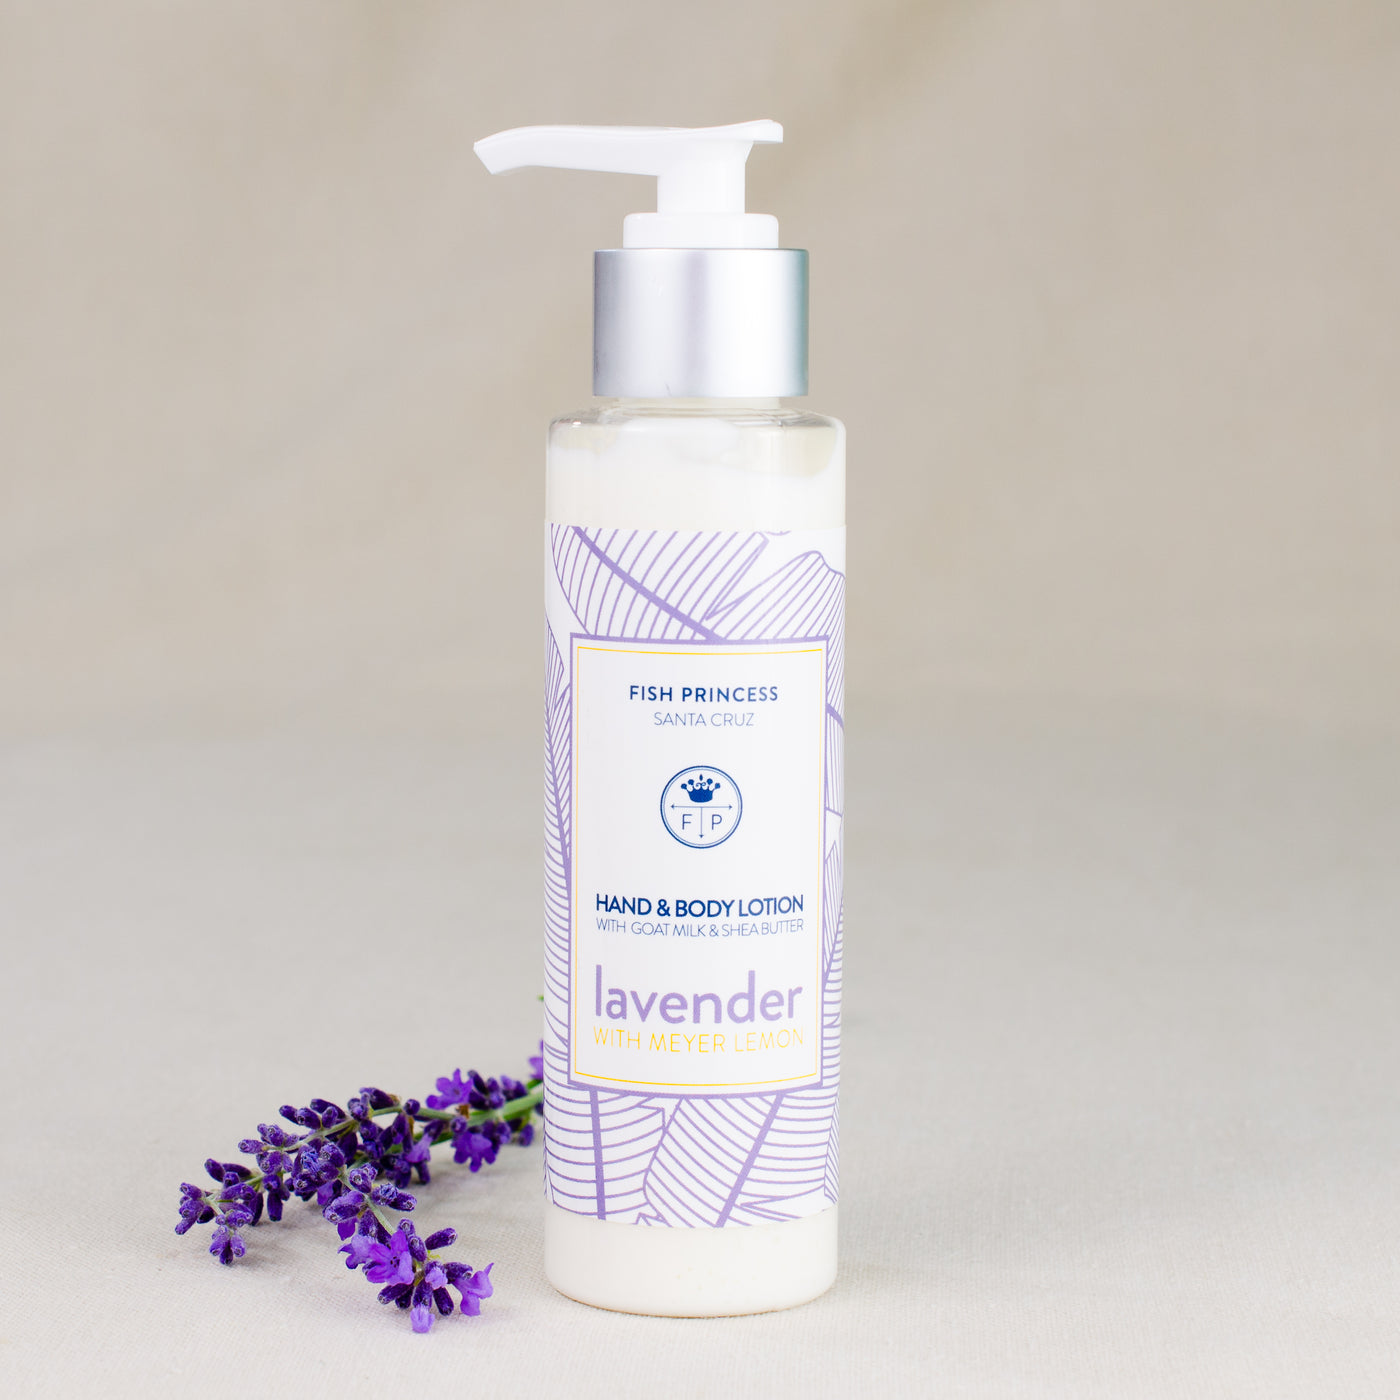 Goat milk lotion with real lavender 4 oz pump